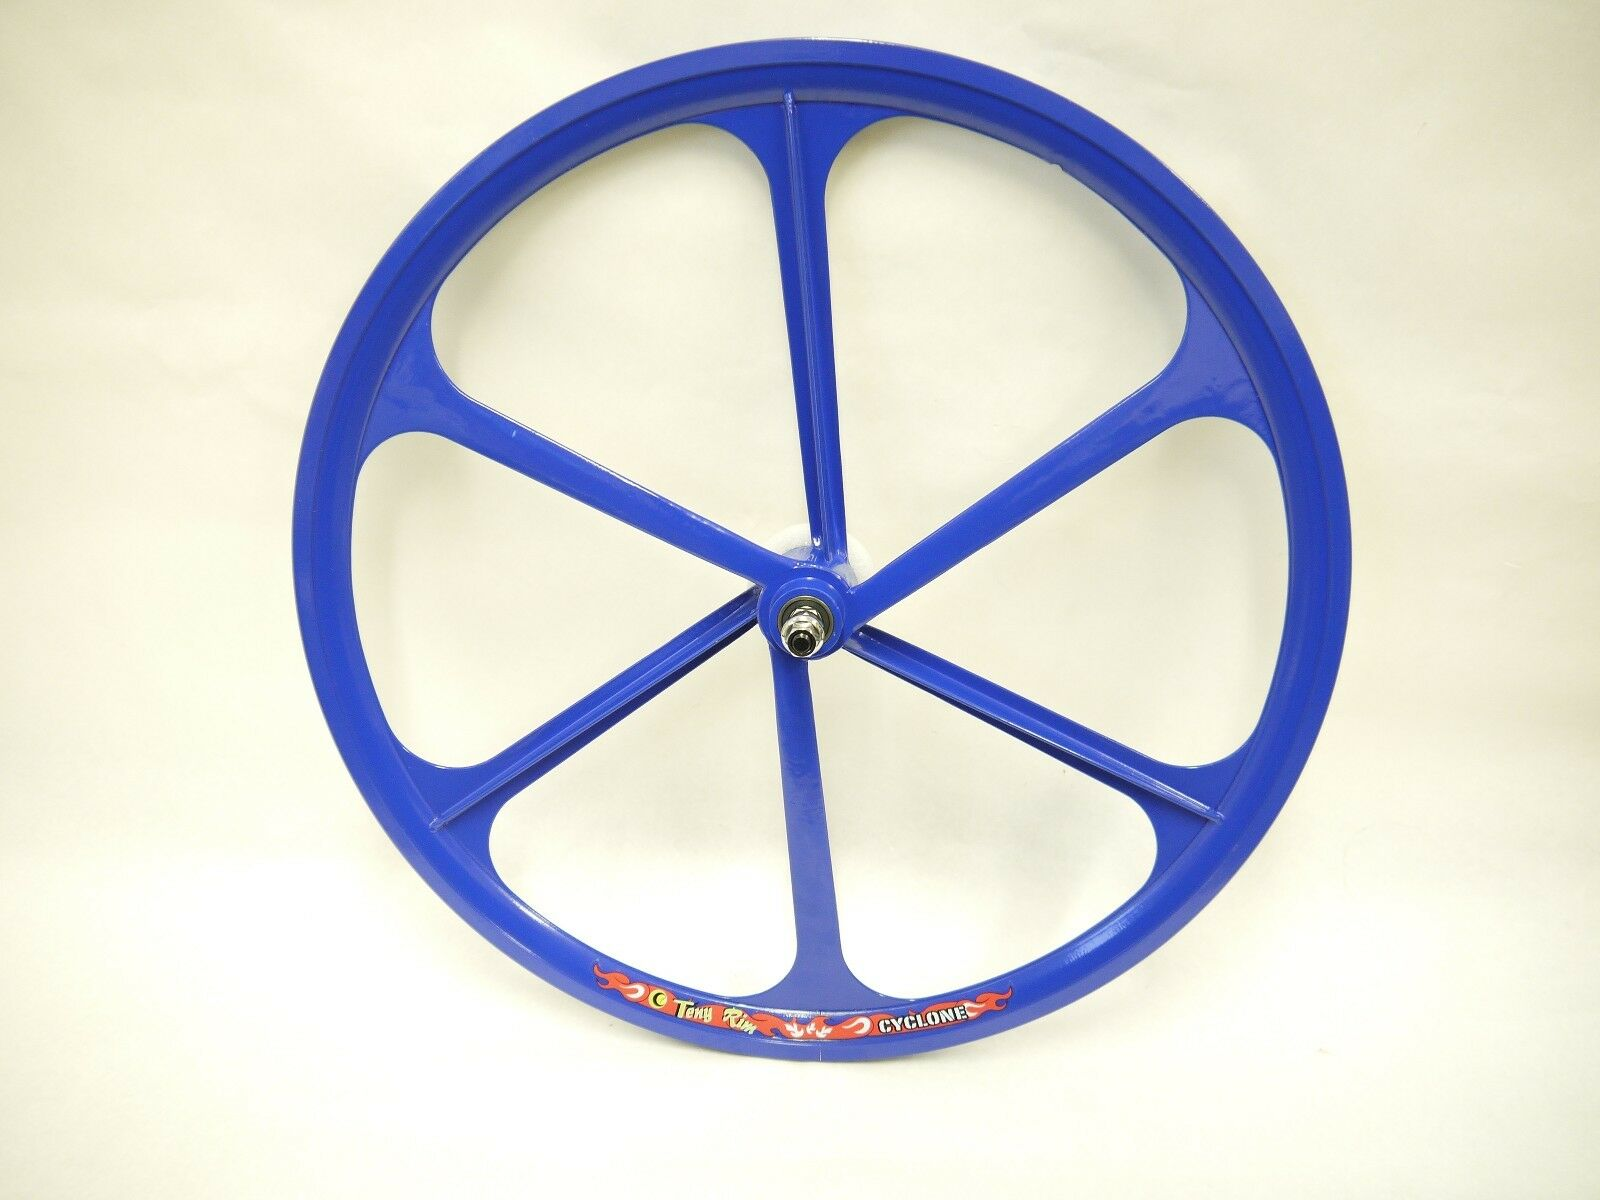 blueee Fixed Gear Mag Wheel by TENY RIMS. 26 x 1.25. Fixie bike. Bicycle.